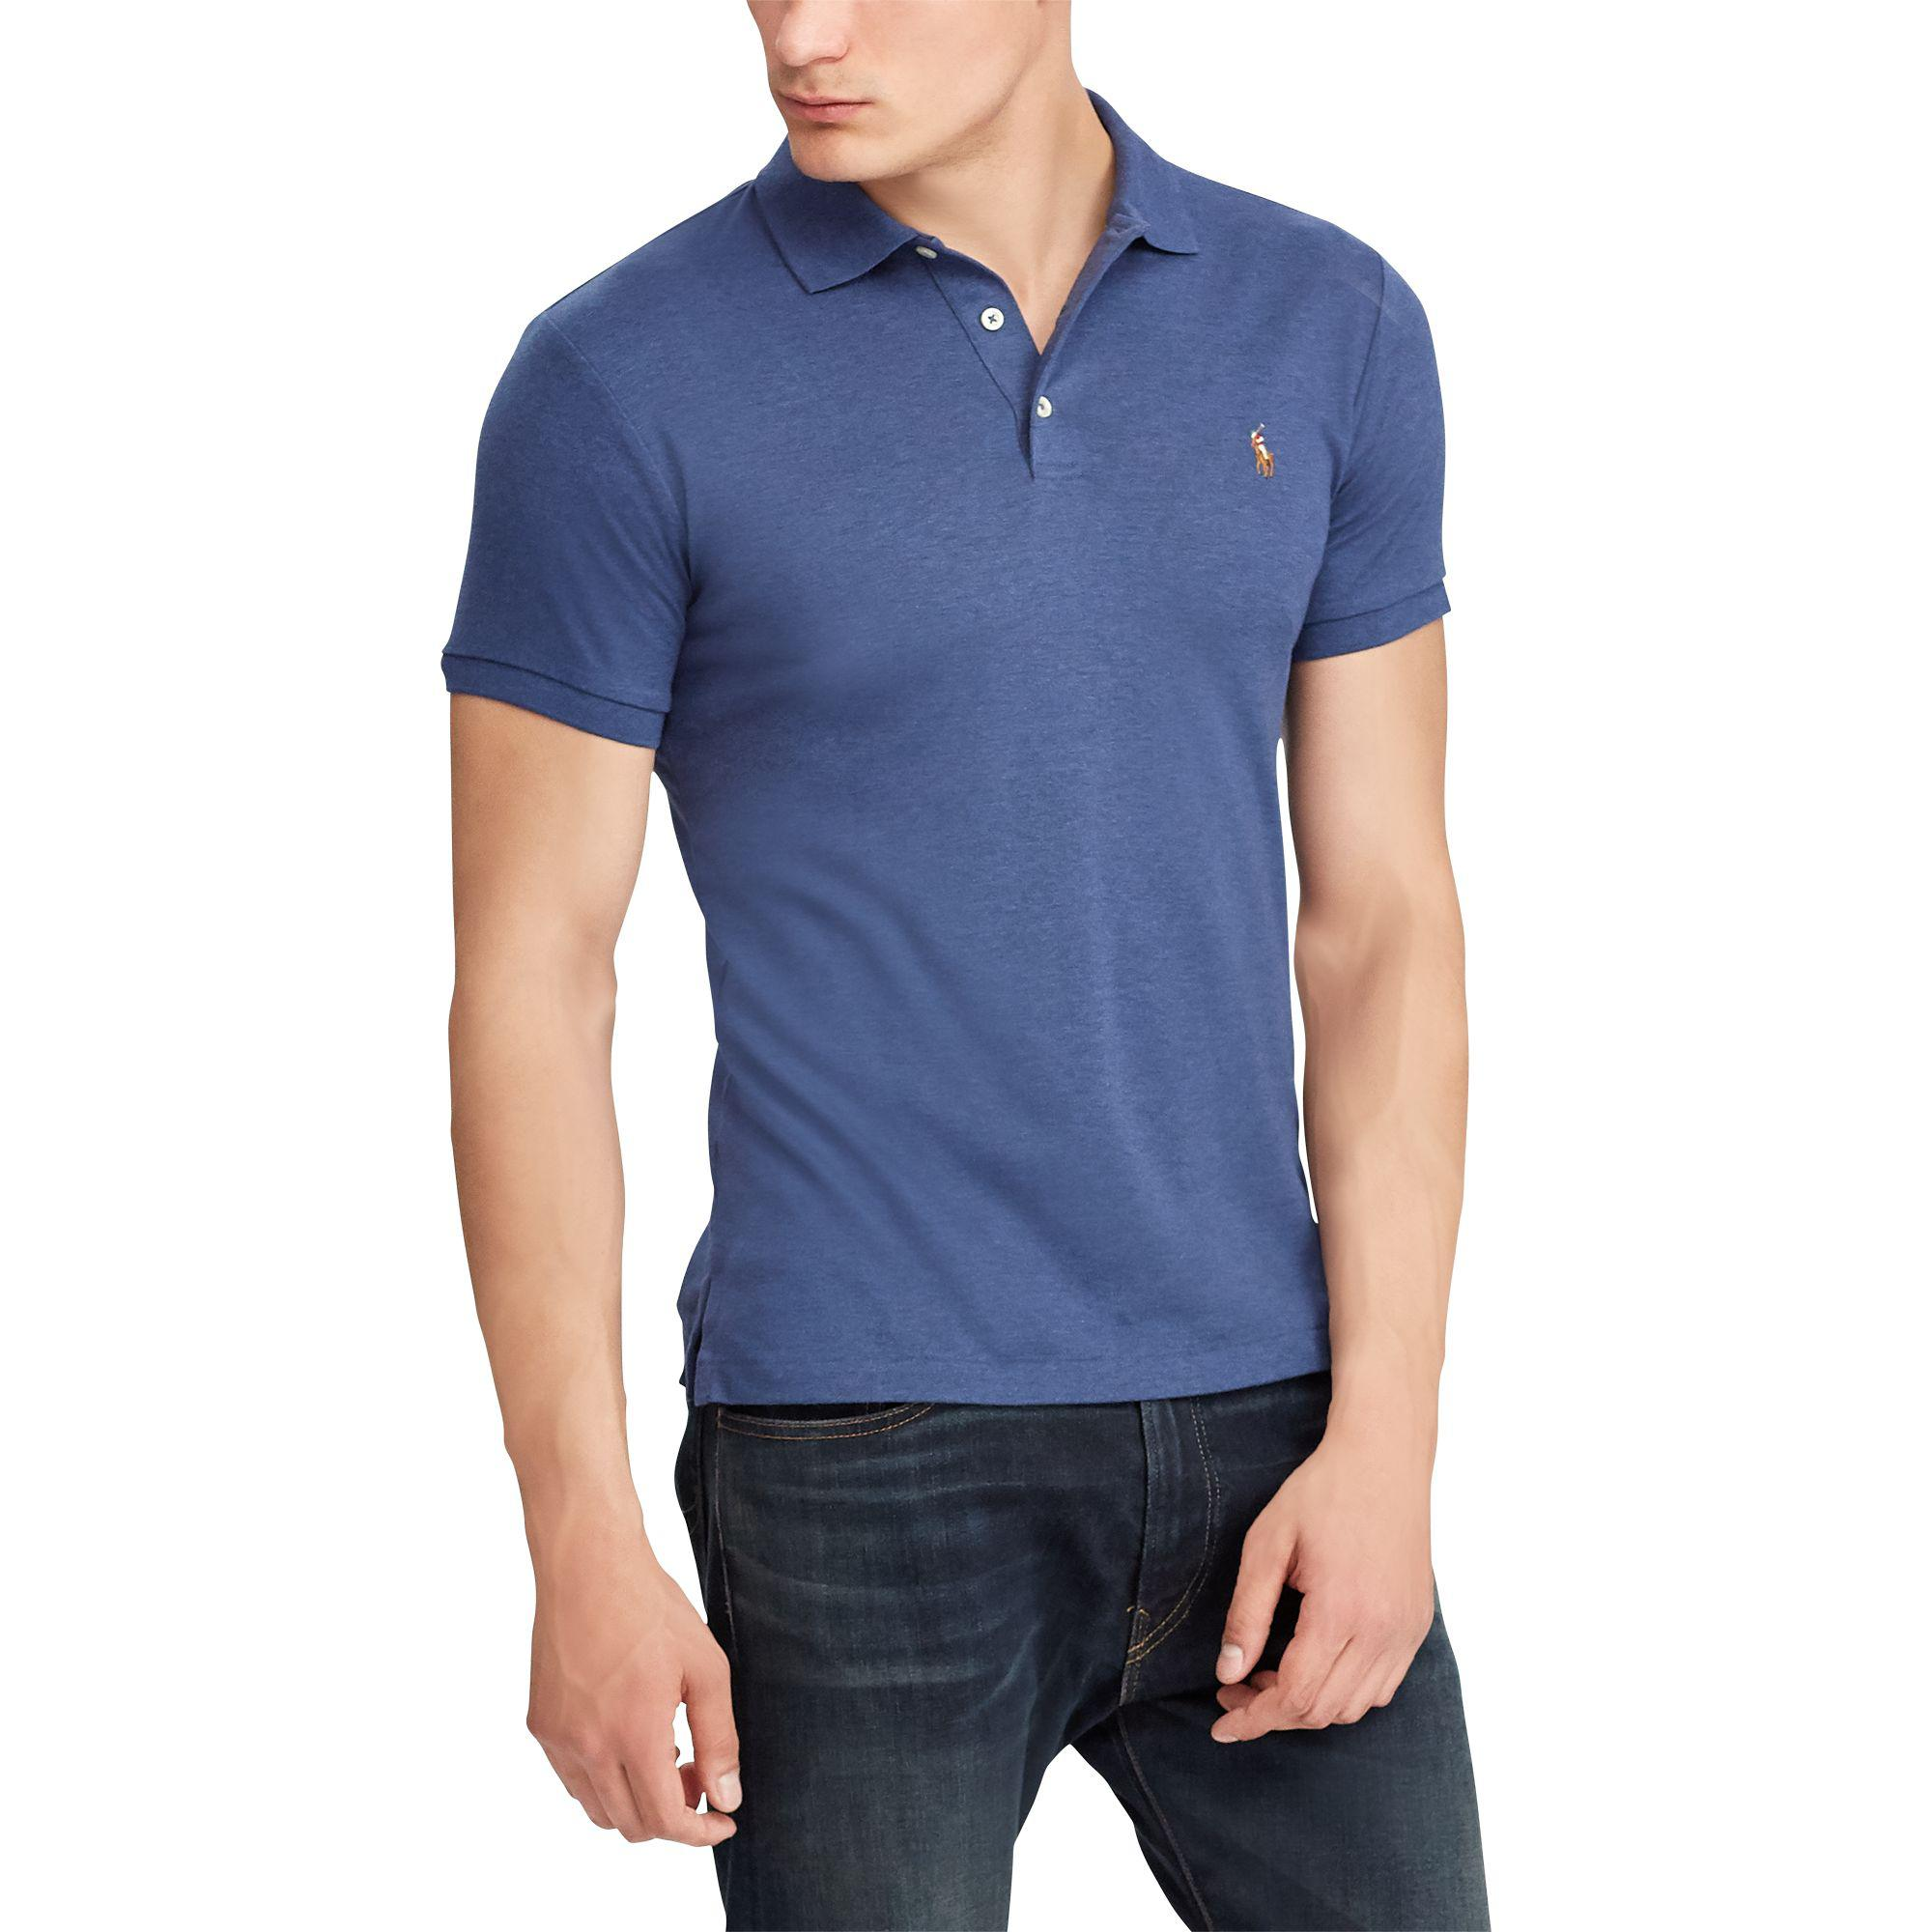 46c2310731 Polo Ralph Lauren Slim Fit Soft-touch Polo Shirt in Blue for Men - Lyst